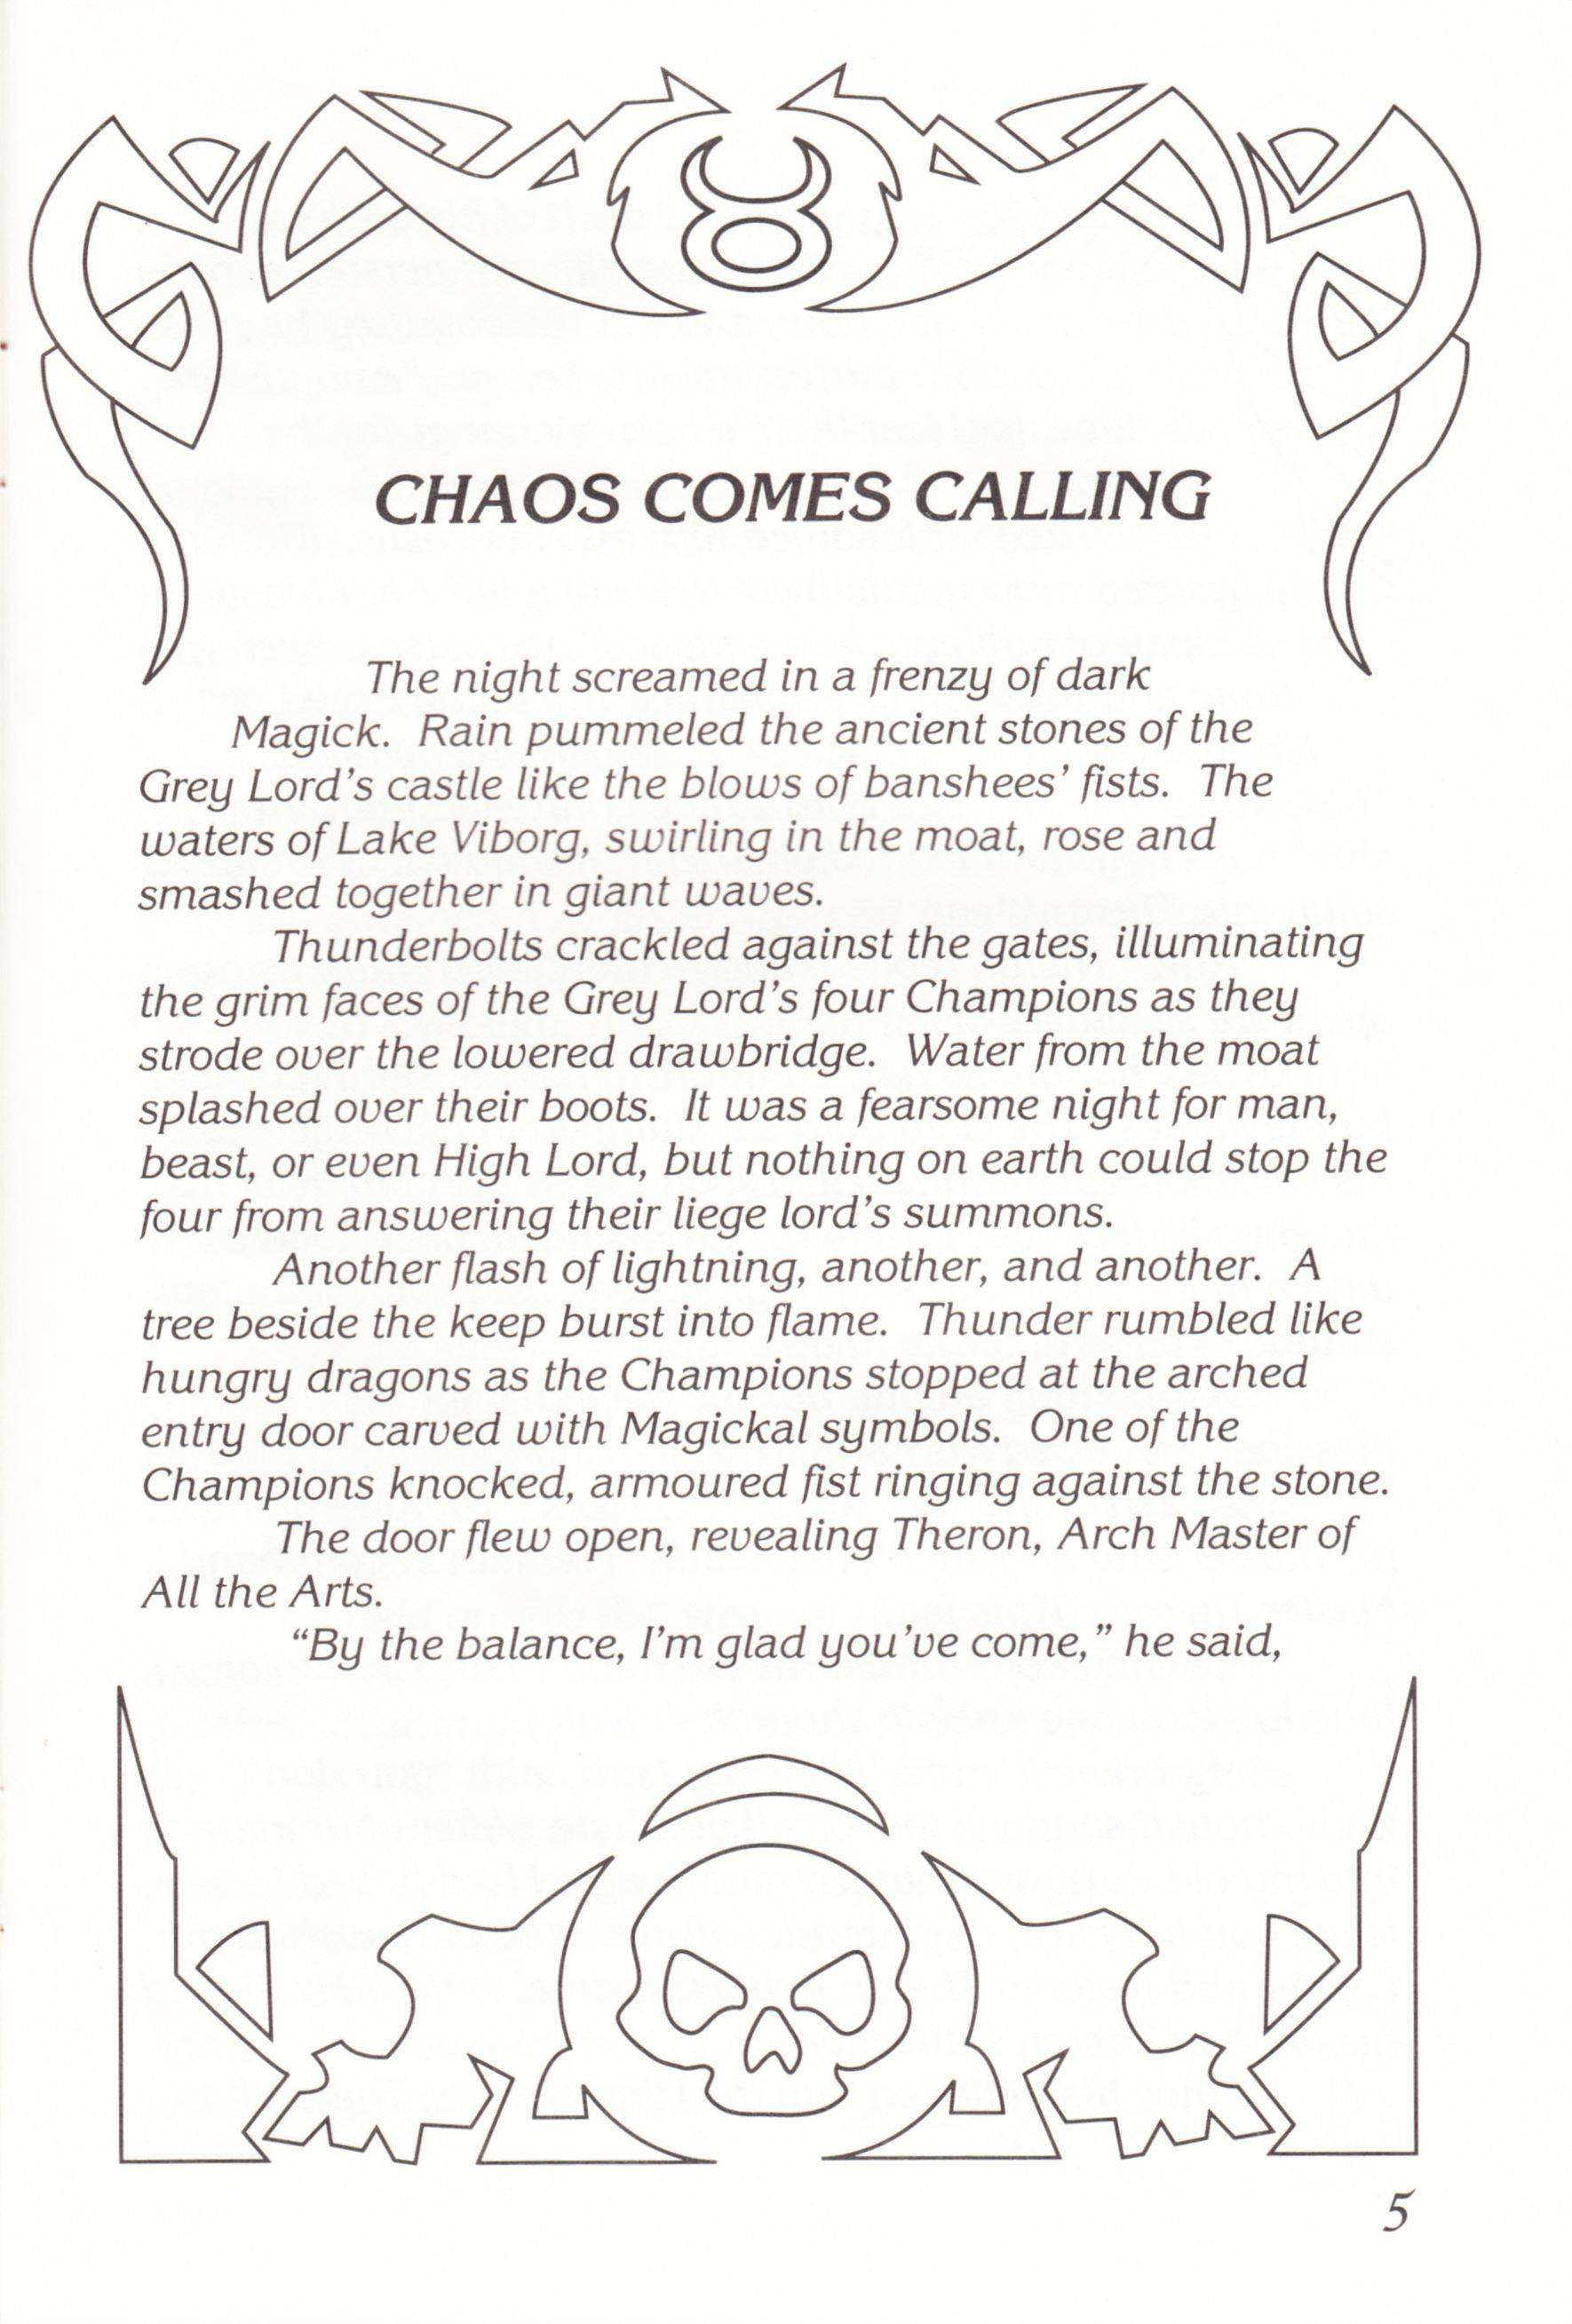 Game - Chaos Strikes Back - UK - Atari ST - Manual - Page 007 - Scan